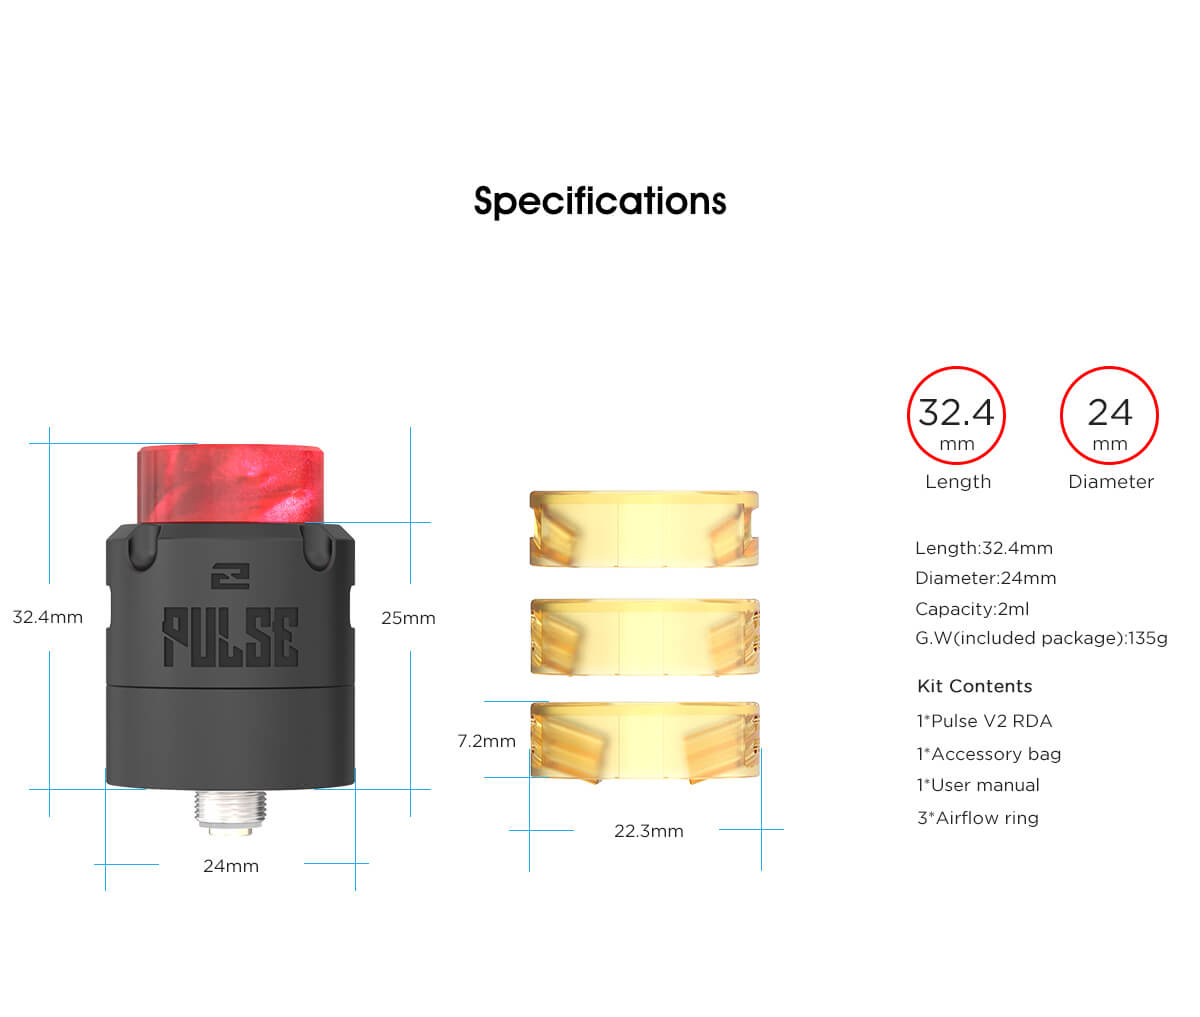 Vandy Vape Pulse V2 RDA Specifications